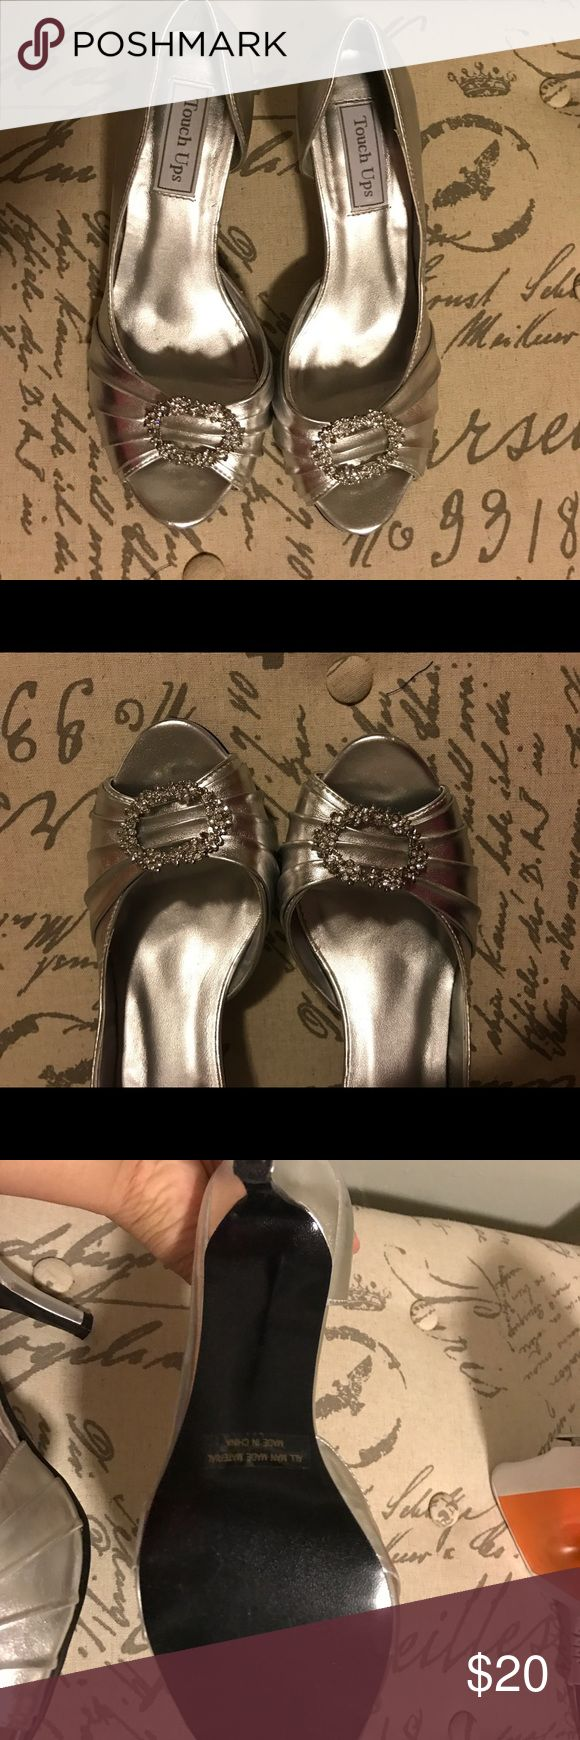 silver kitten heel dressy shoes Metallic silver. EUC. Wore once as bridesmaid to wedding Shoes Heels